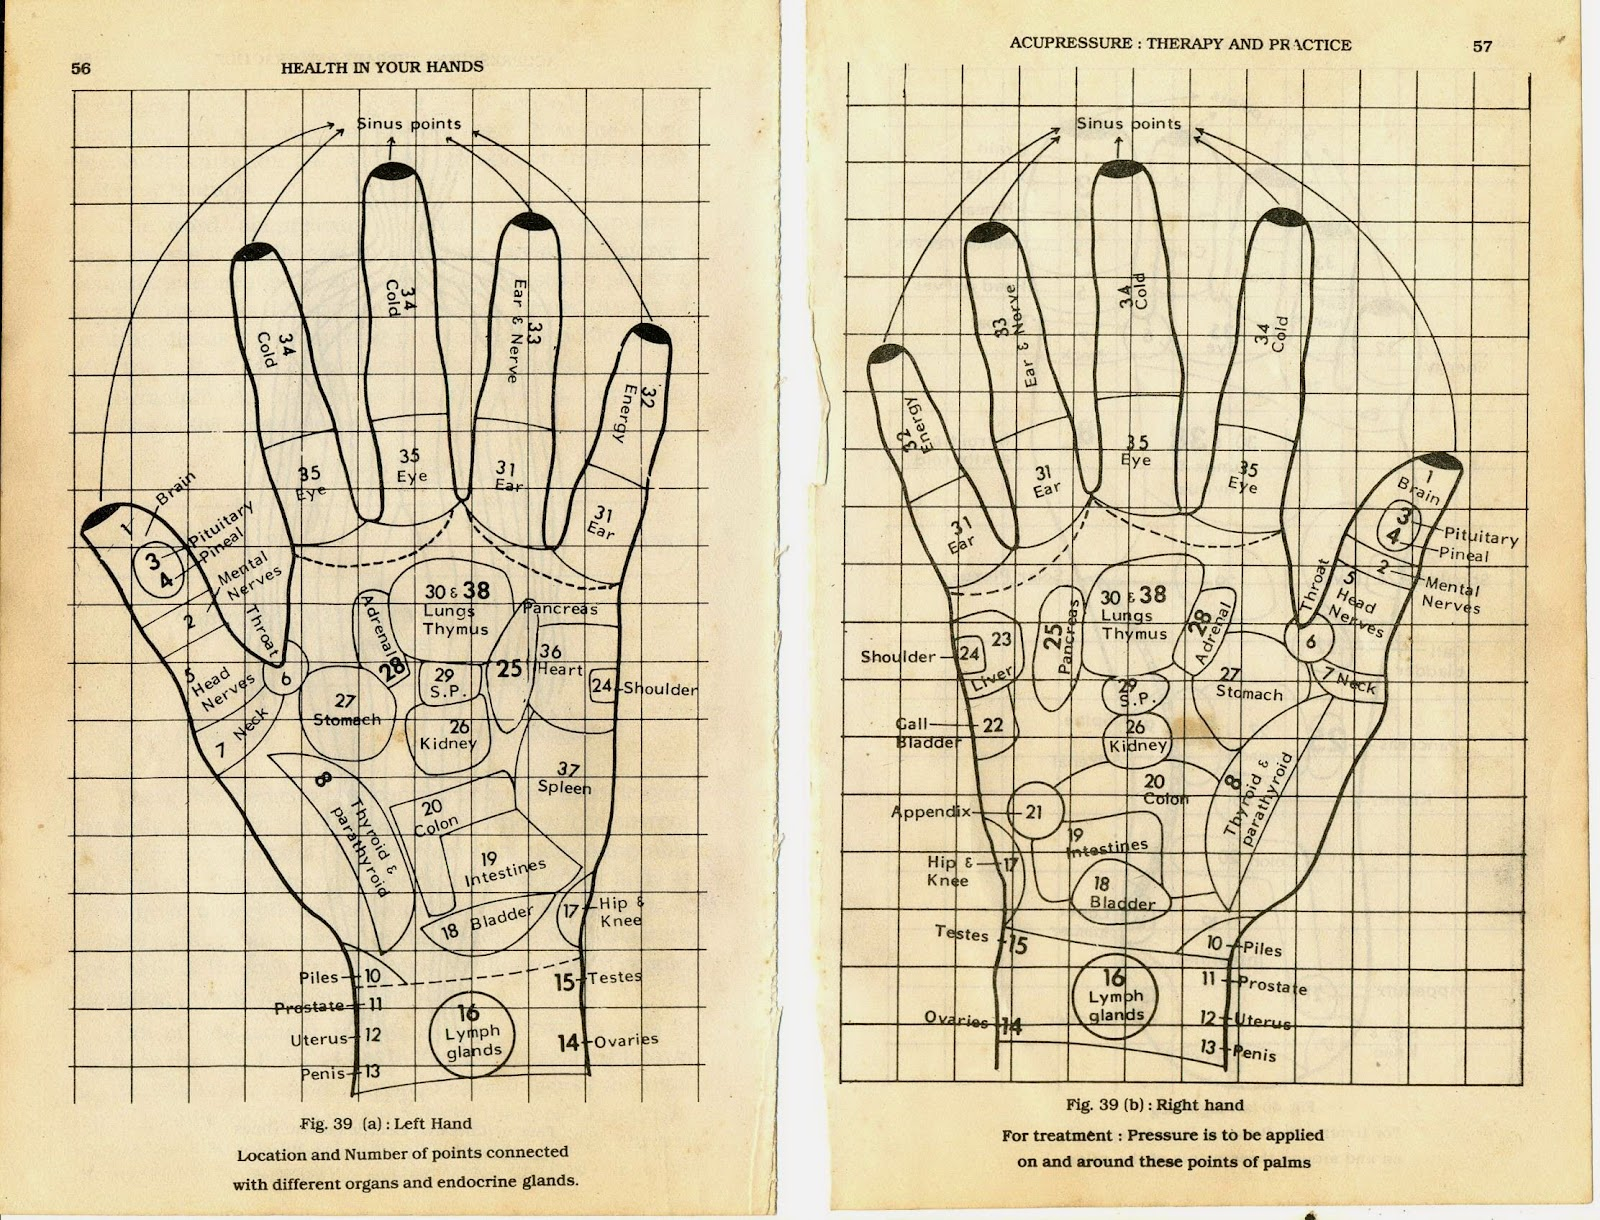 Acupressure reflexology charts collection my own thoughts httpi240otobucketalbumsff142mrinalkpfeet 20points20devendrazpsc9fb82c3g ccuart Image collections